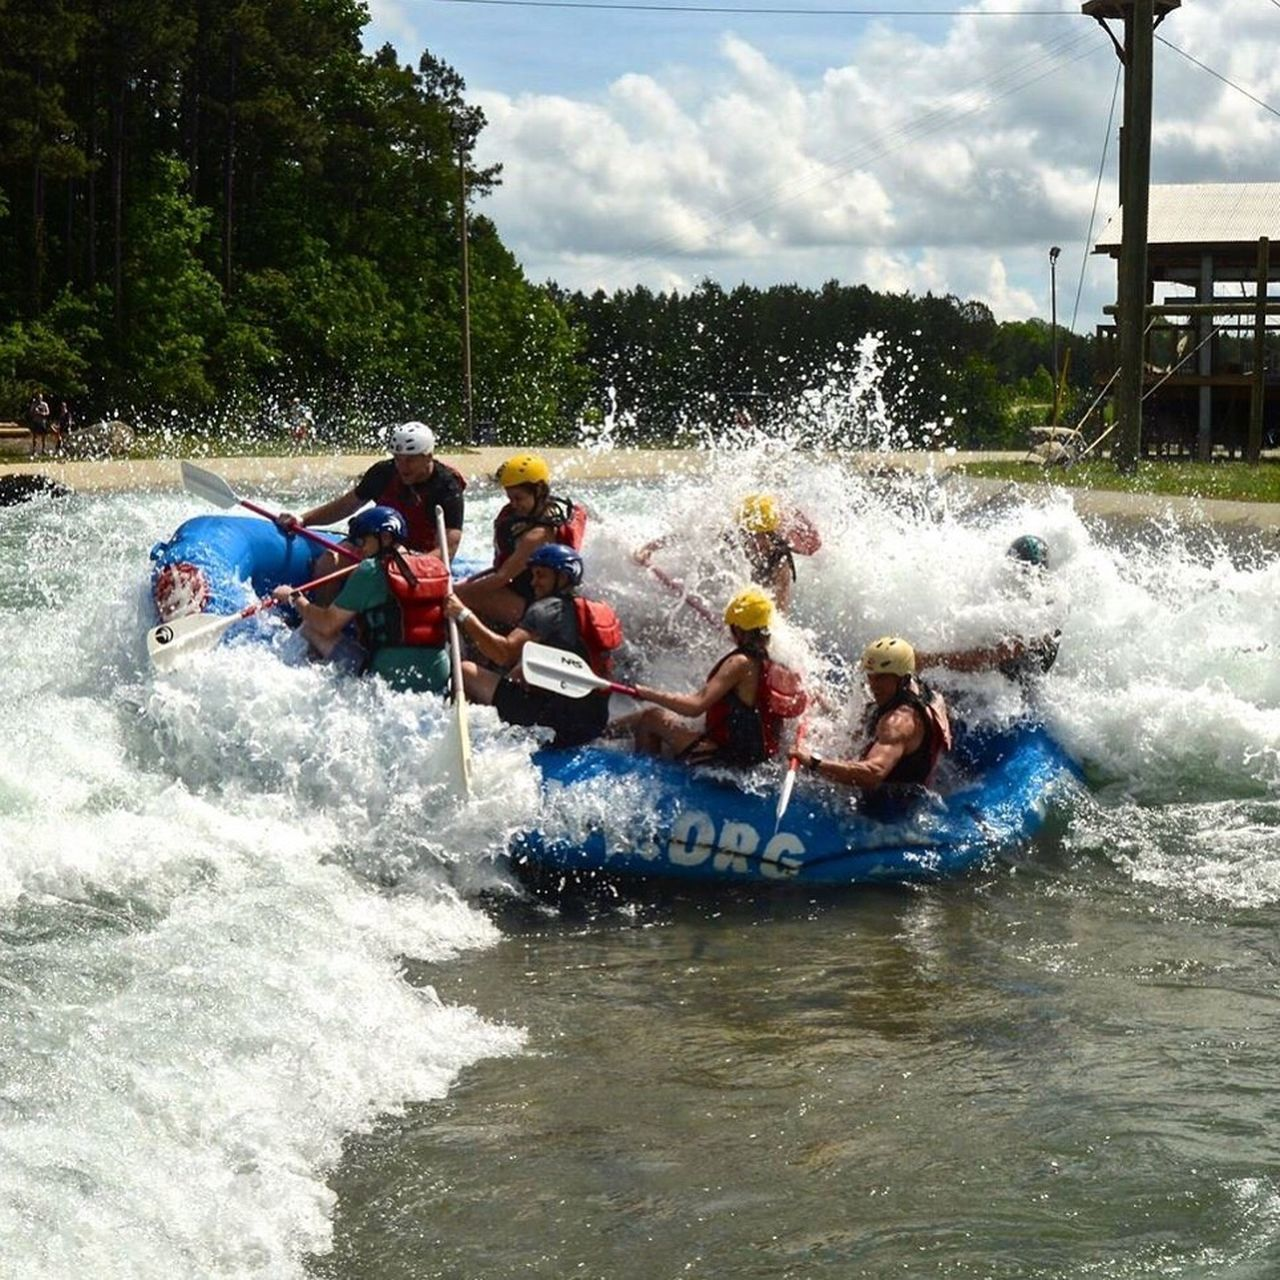 Whitewater rafting in Charlotte, NC. Rafting Outdoors Whitewater Charlotte North Carolina Usnwc Water Sports Adventure Action Shot  First Eyeem Photo